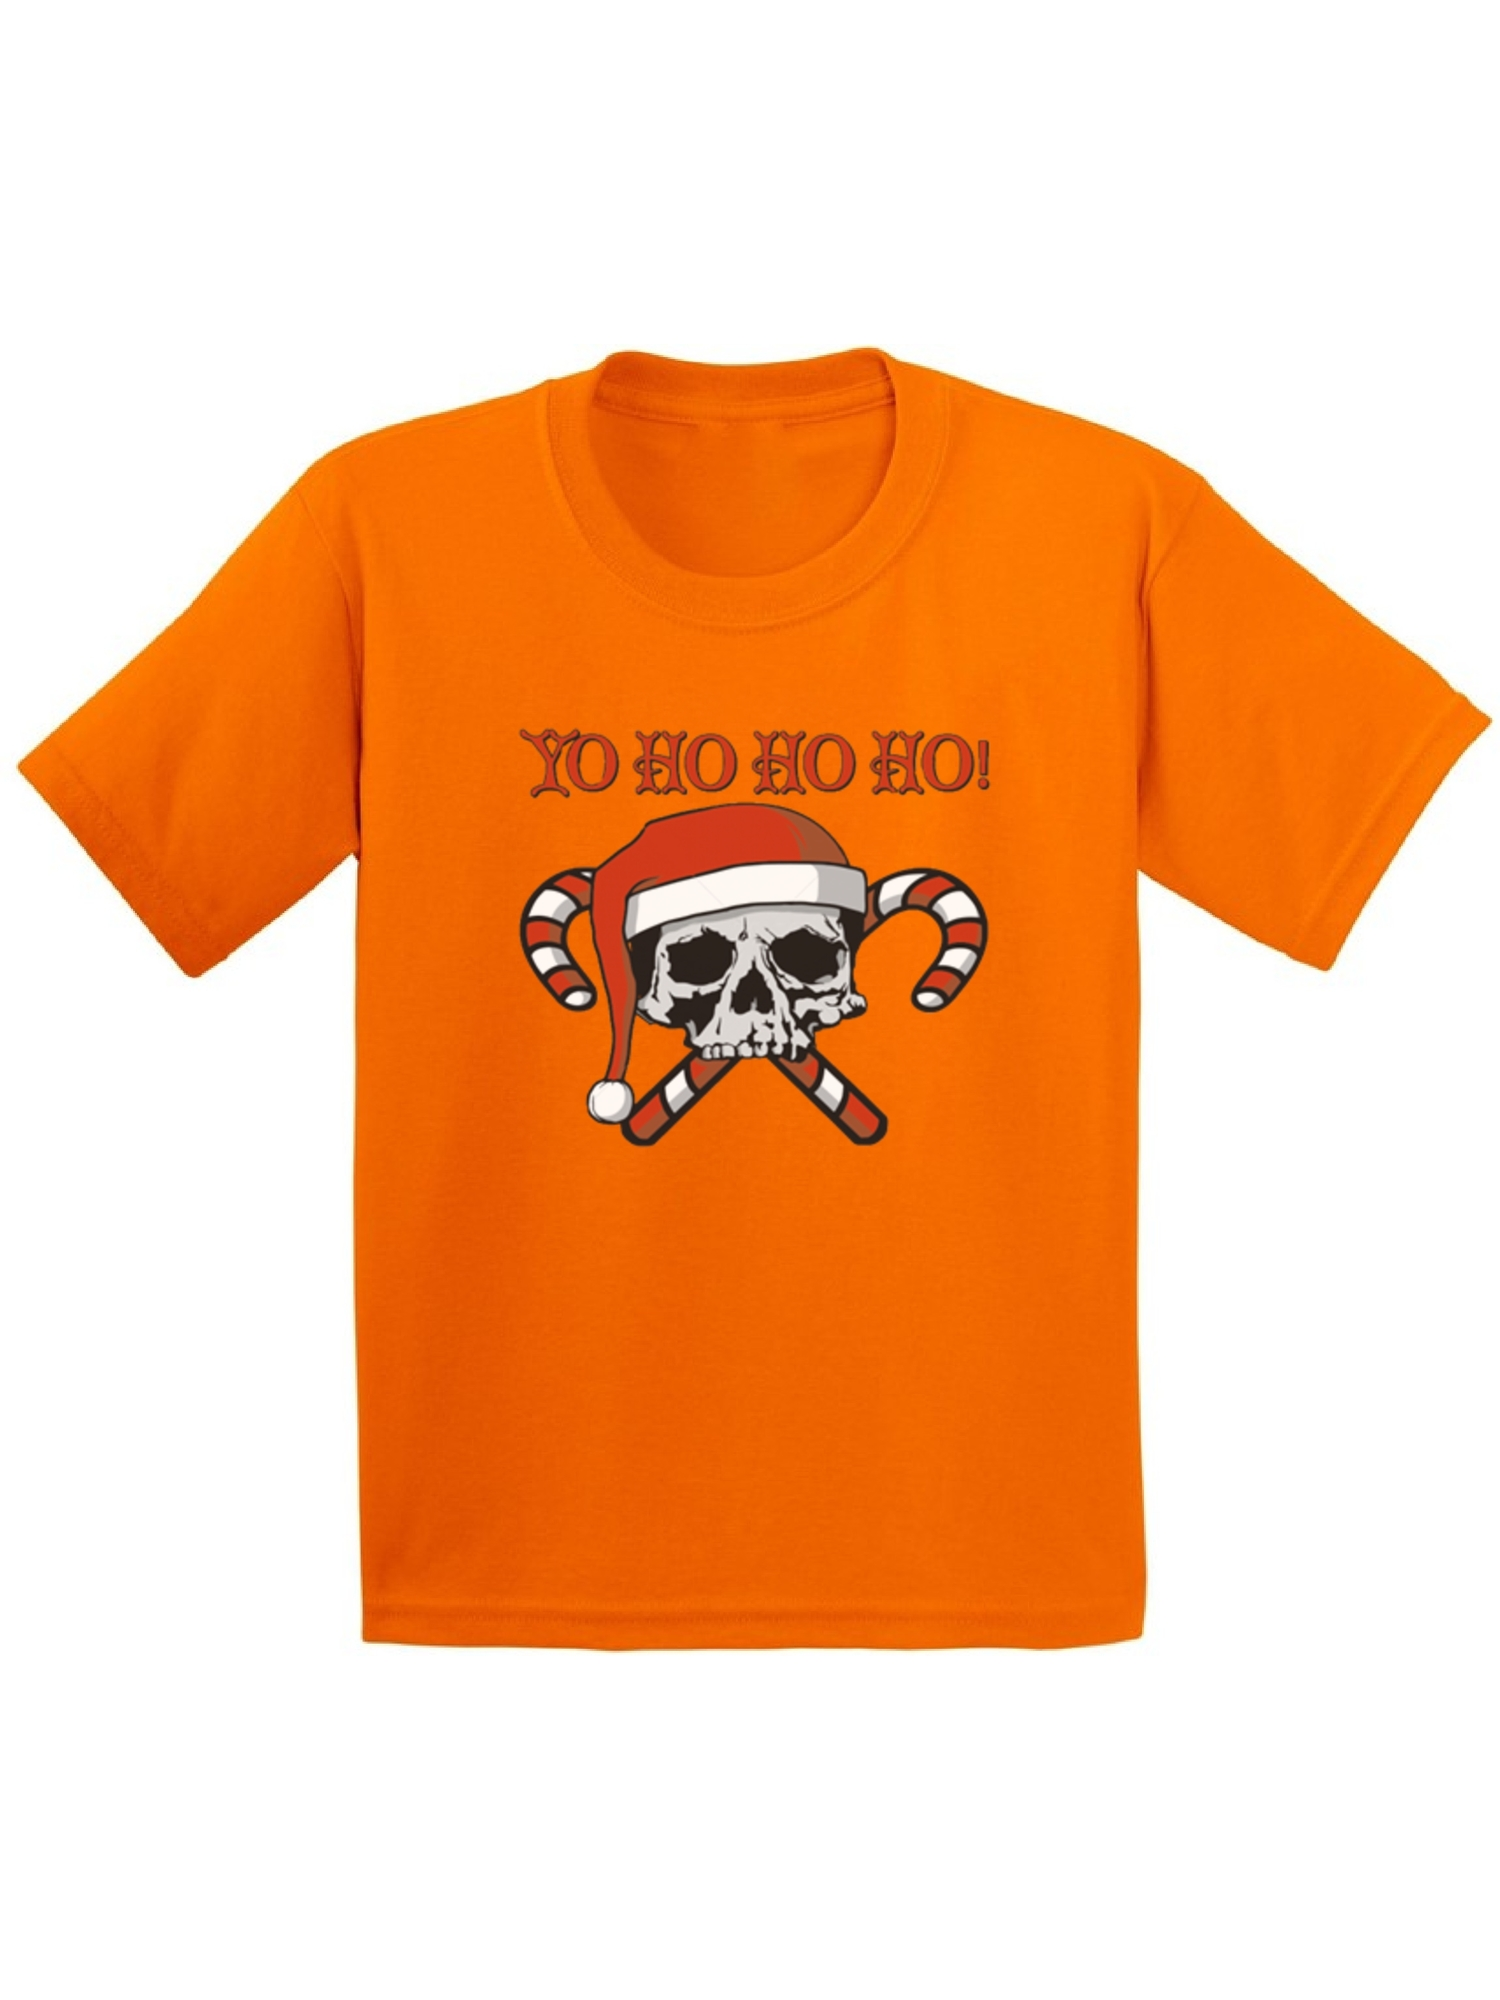 Yo Ho Ho Ho Santa Skull Candy Christmas Shirts for Kids Youth Christmas Tee